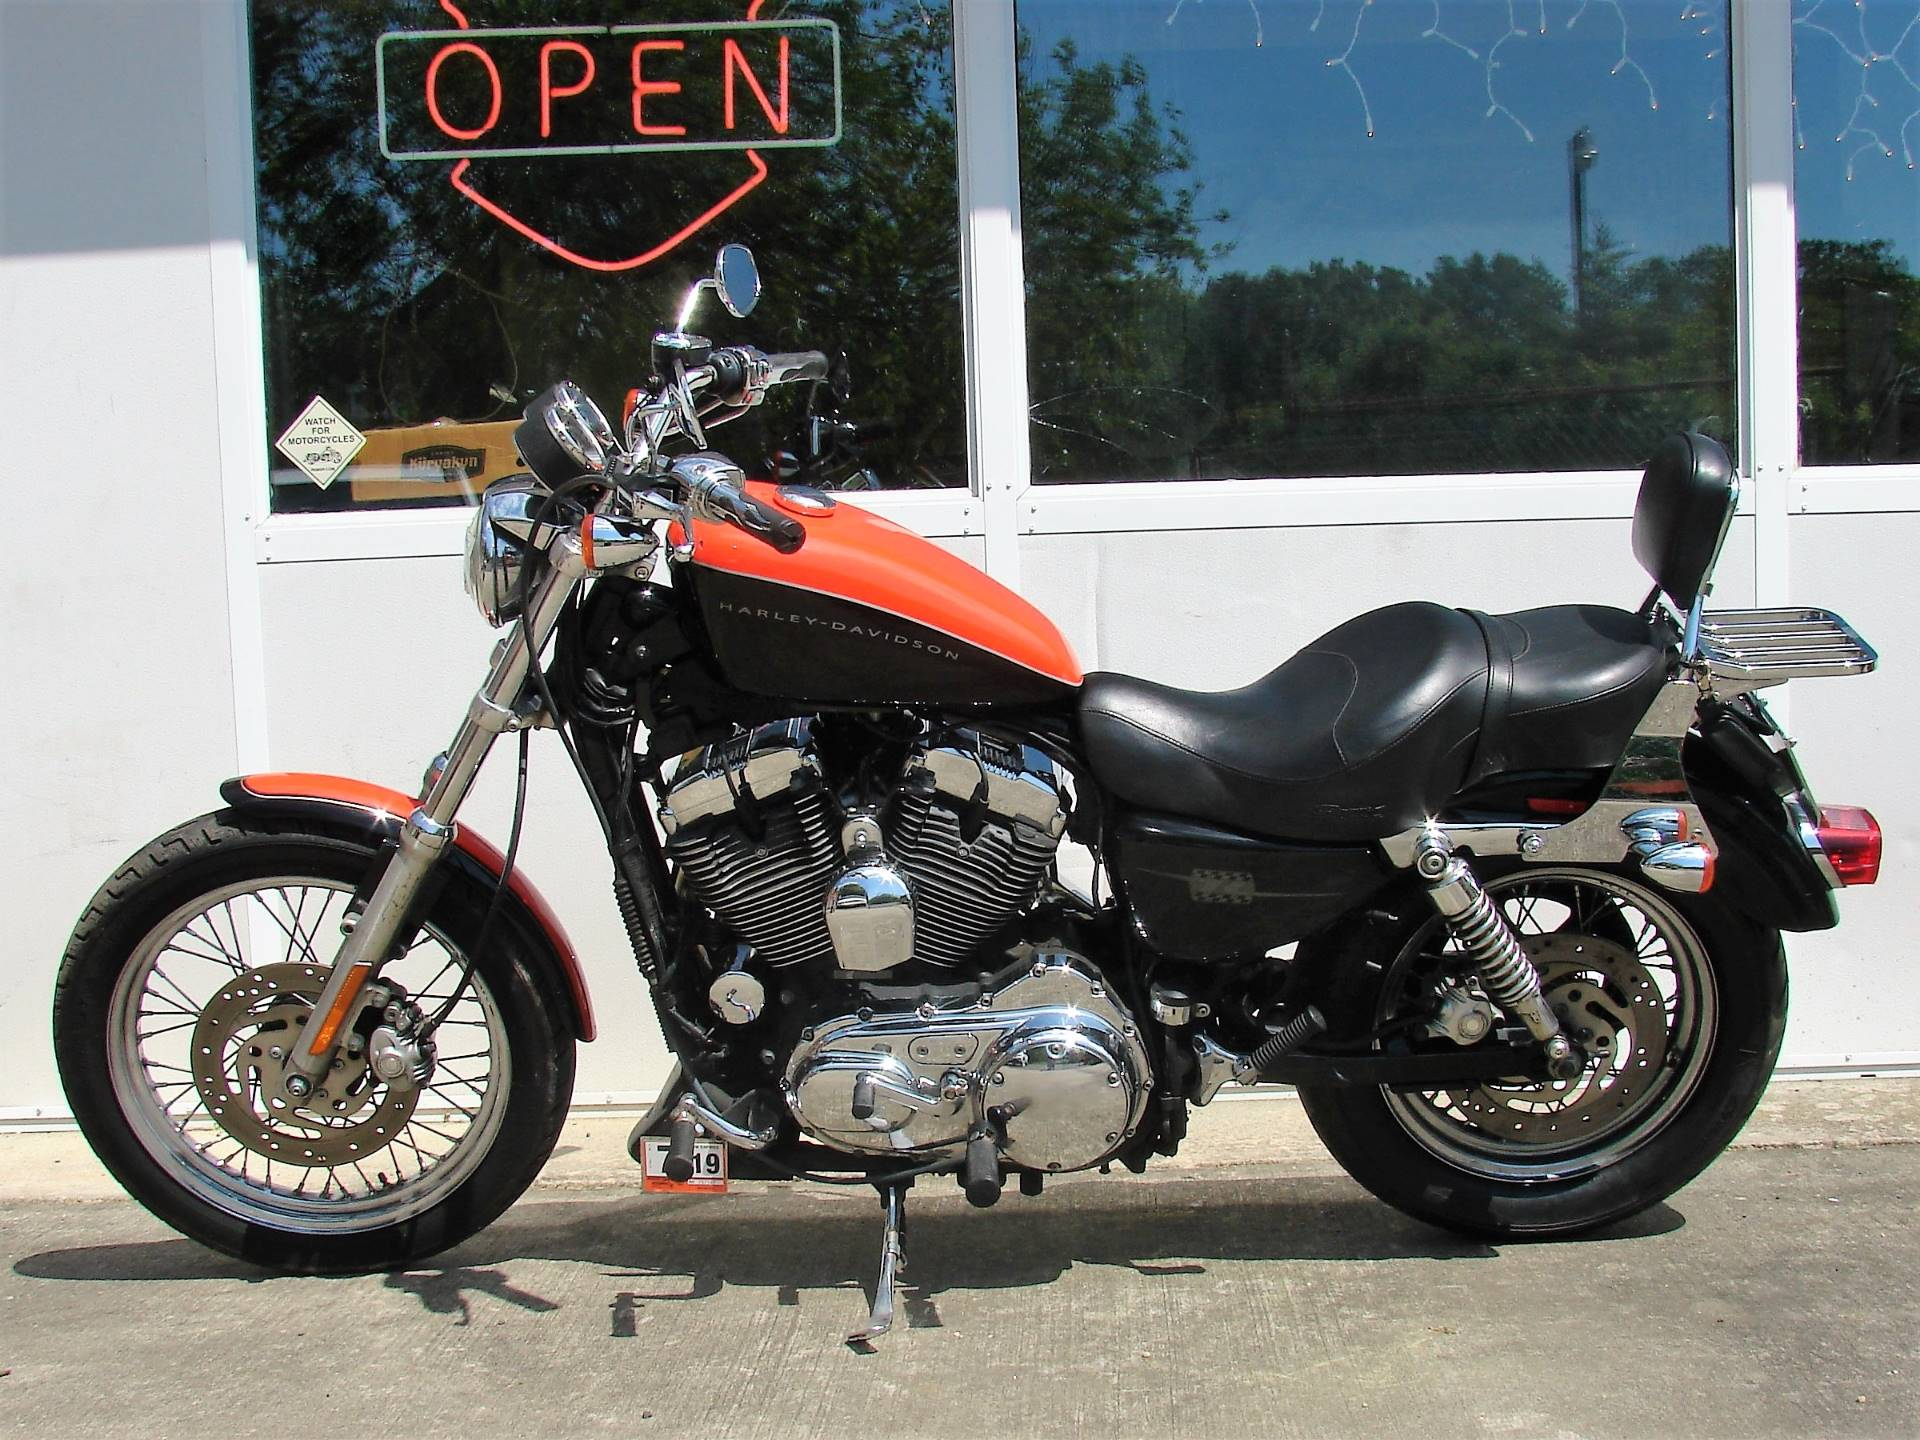 2007 Harley-Davidson 1200 Sportster XL 50  (50th Anniversary Edition) in Williamstown, New Jersey - Photo 13